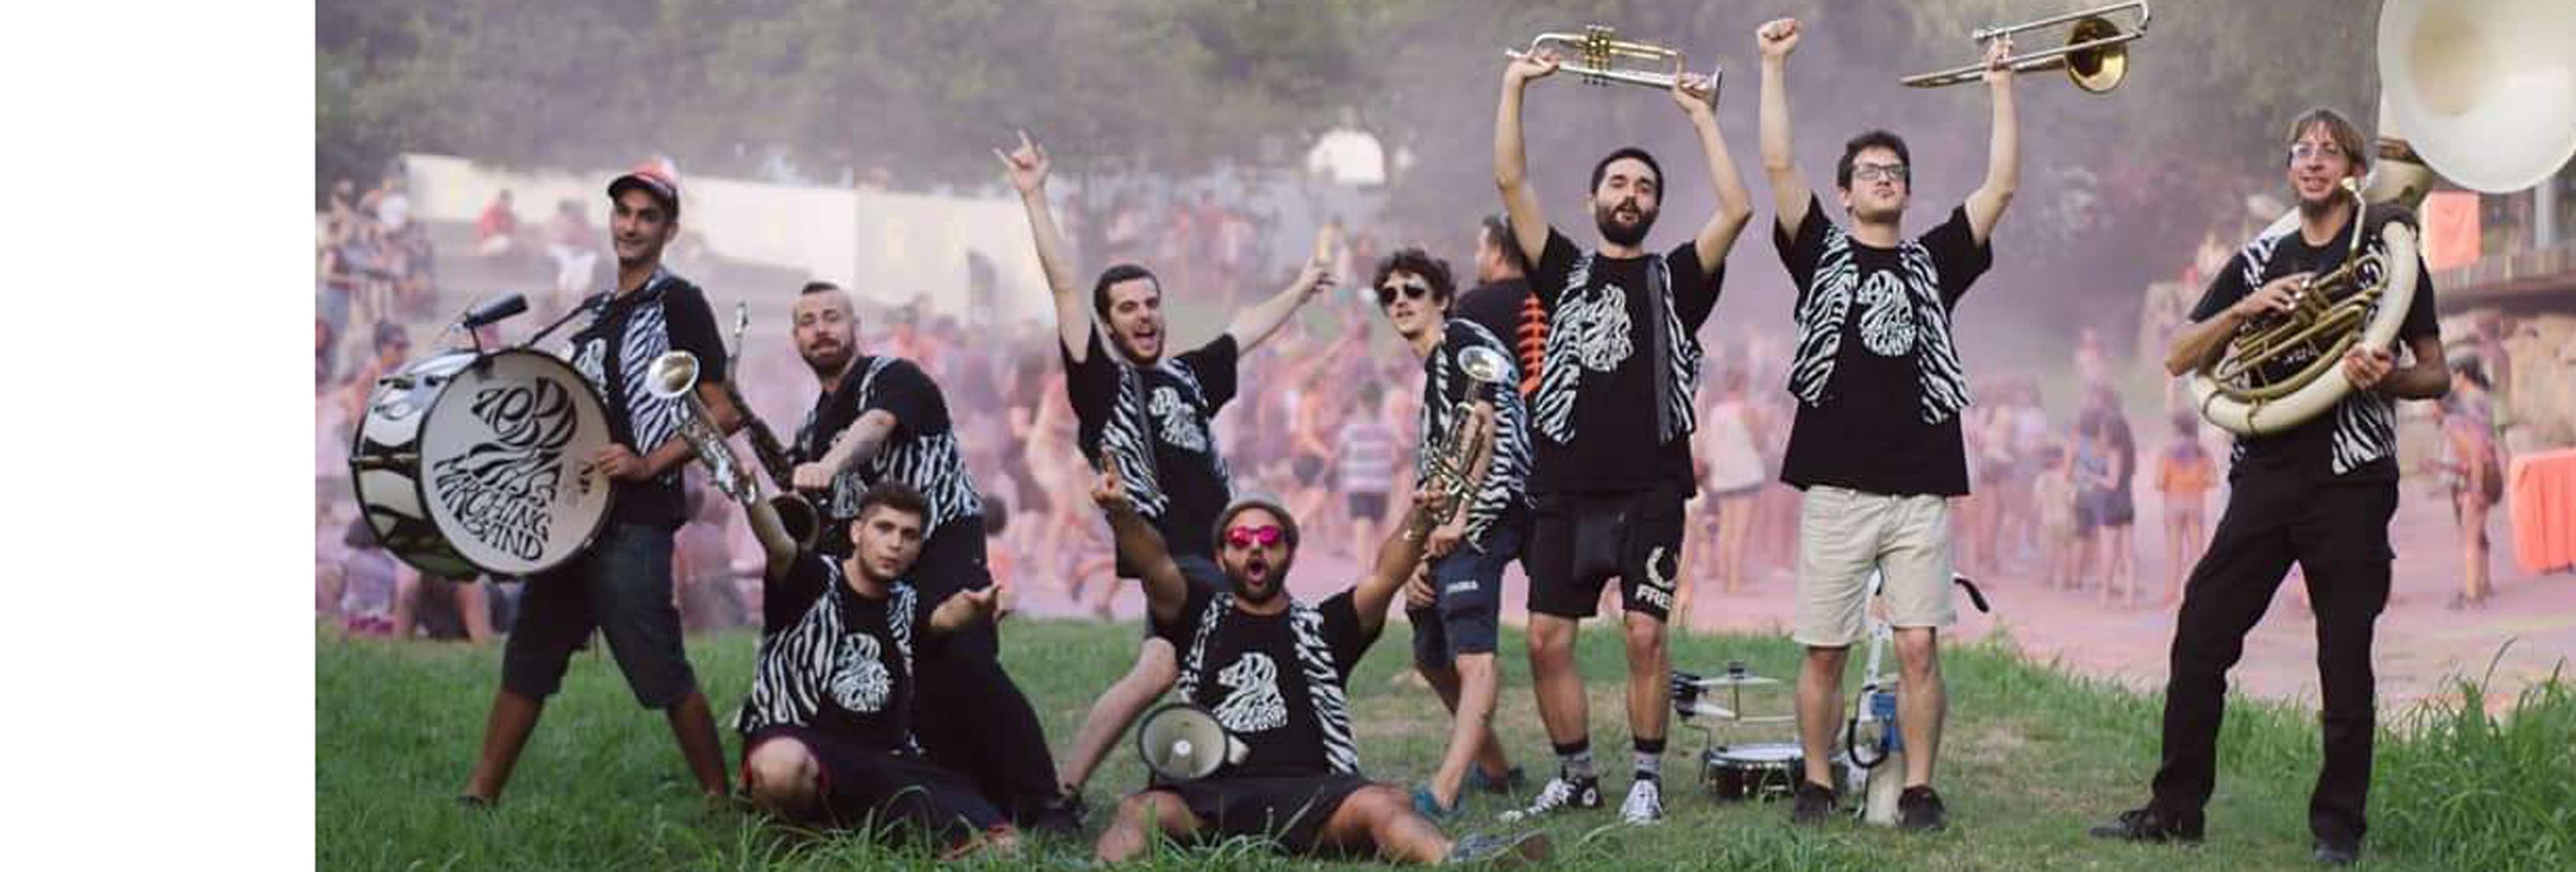 Web-Zebrass marching band